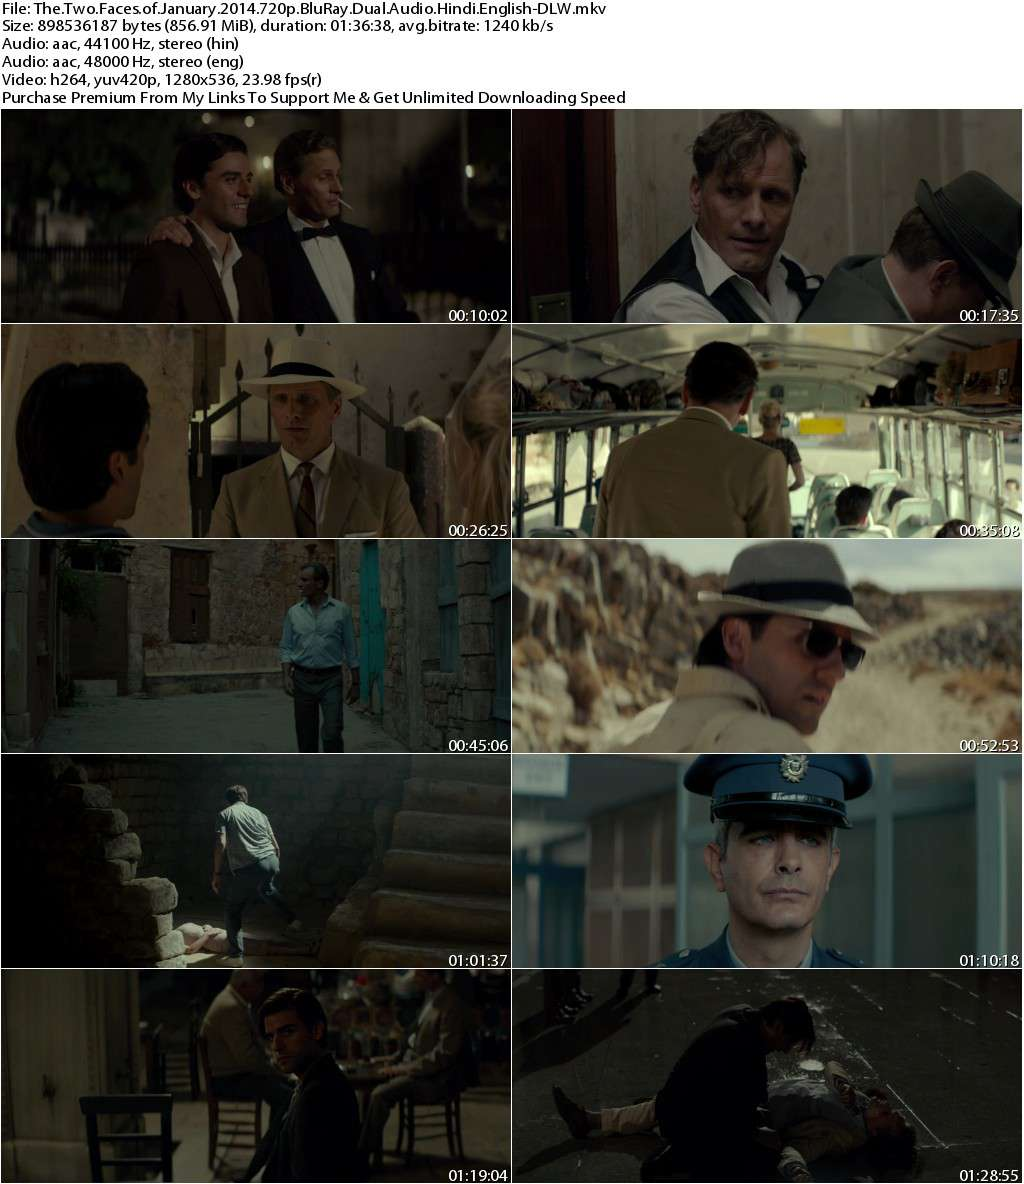 The Two Faces of January (2014) 720p BluRay Dual Audio [Hindi+English]-DLW